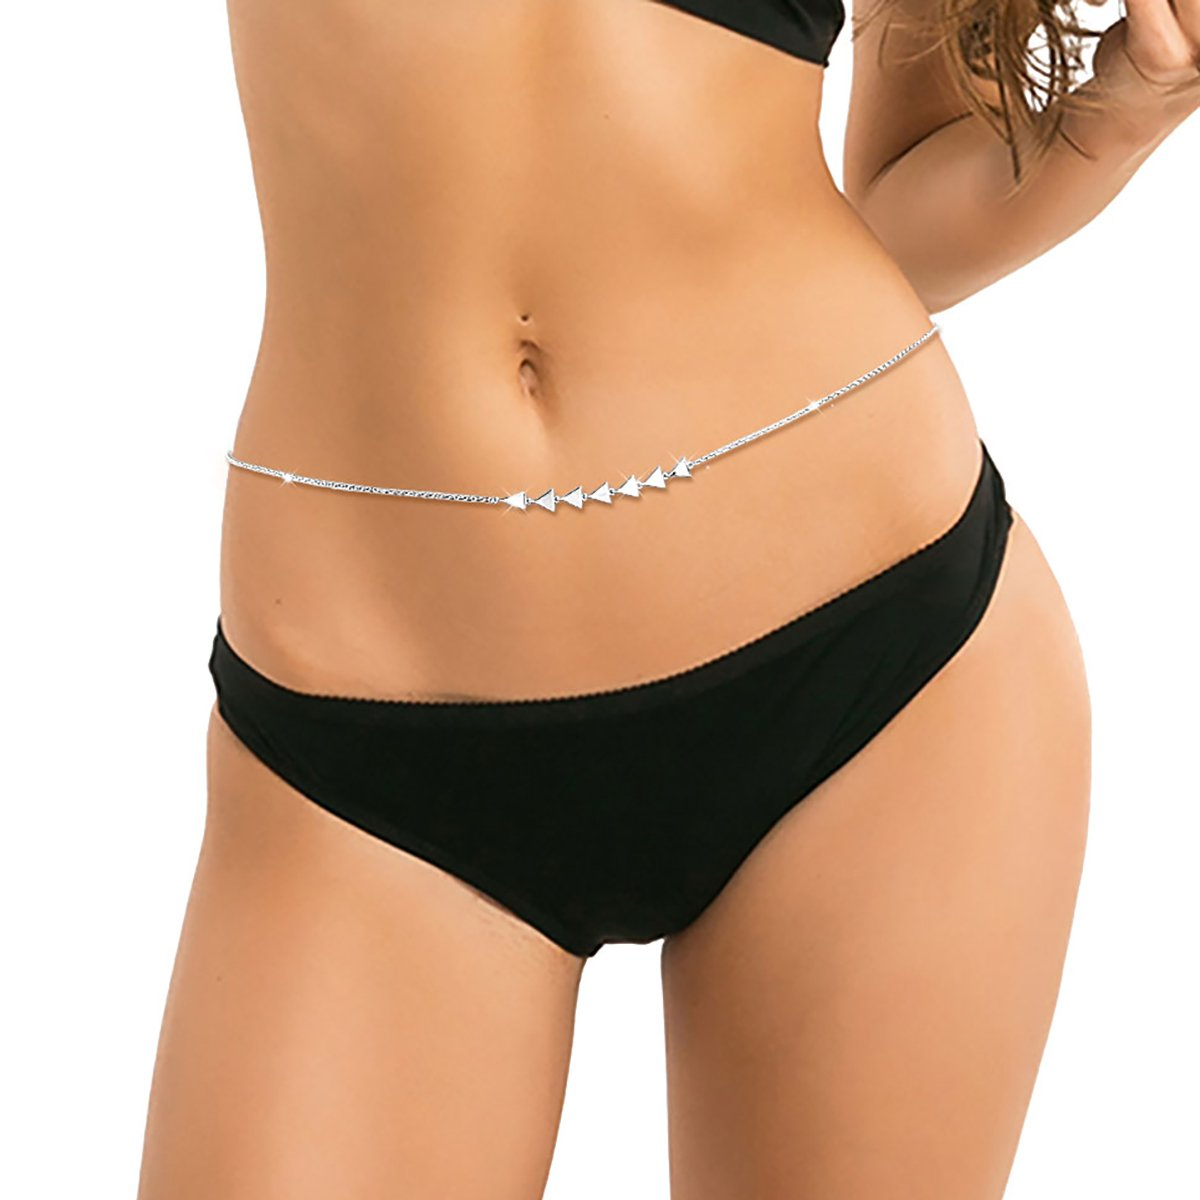 SILVER MOUNTAIN S925 Sterling Silver Sexy Waist Belt Belly Chain Adjustable Body Chain (Triangle)